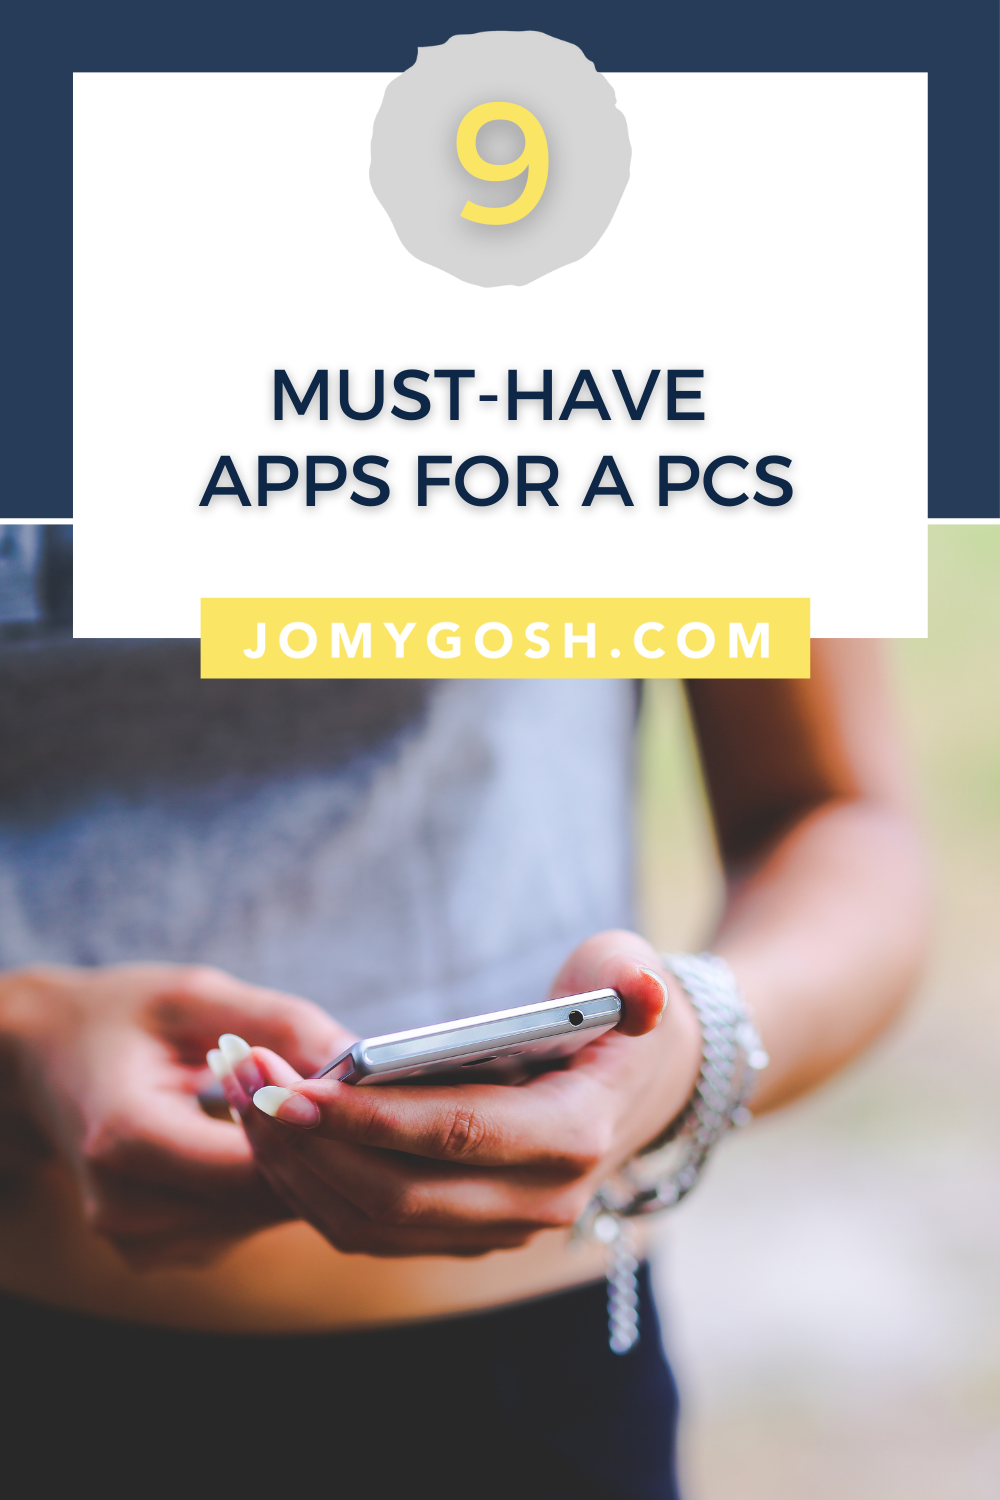 These apps will help make your next PCS move easier and cheaper.